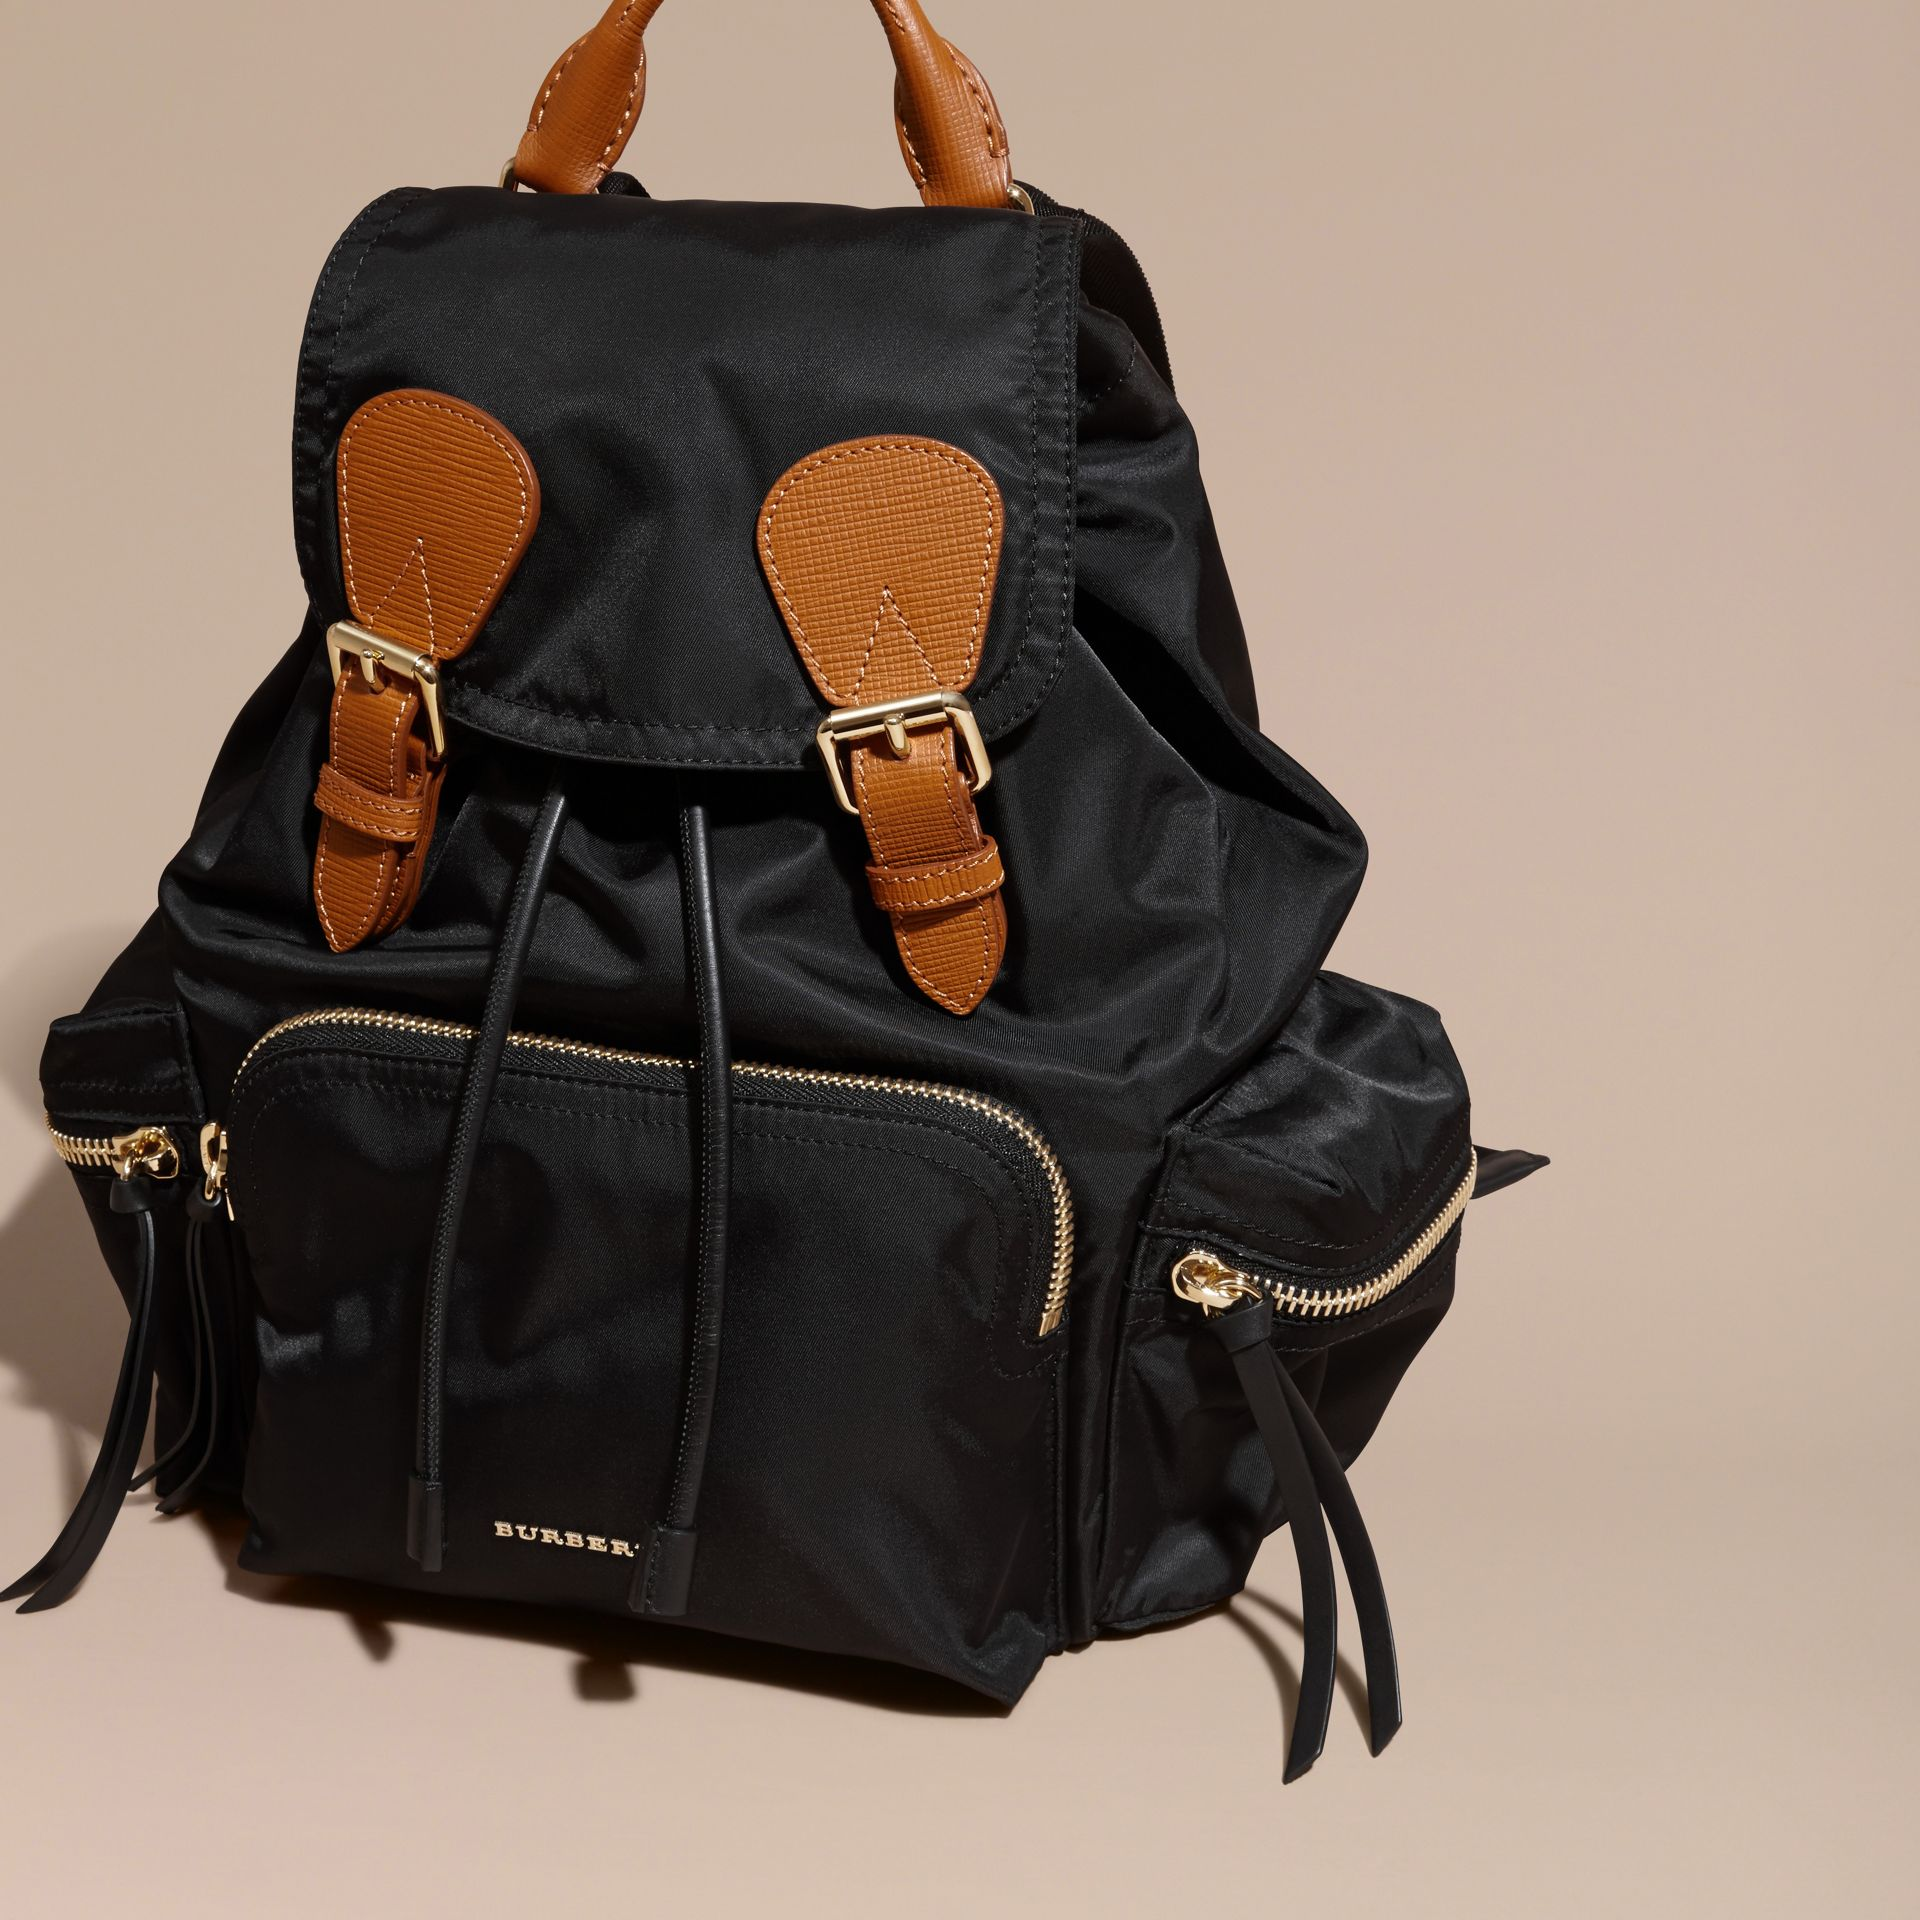 Sac The Rucksack medium en nylon technique et cuir Noir - photo de la galerie 8